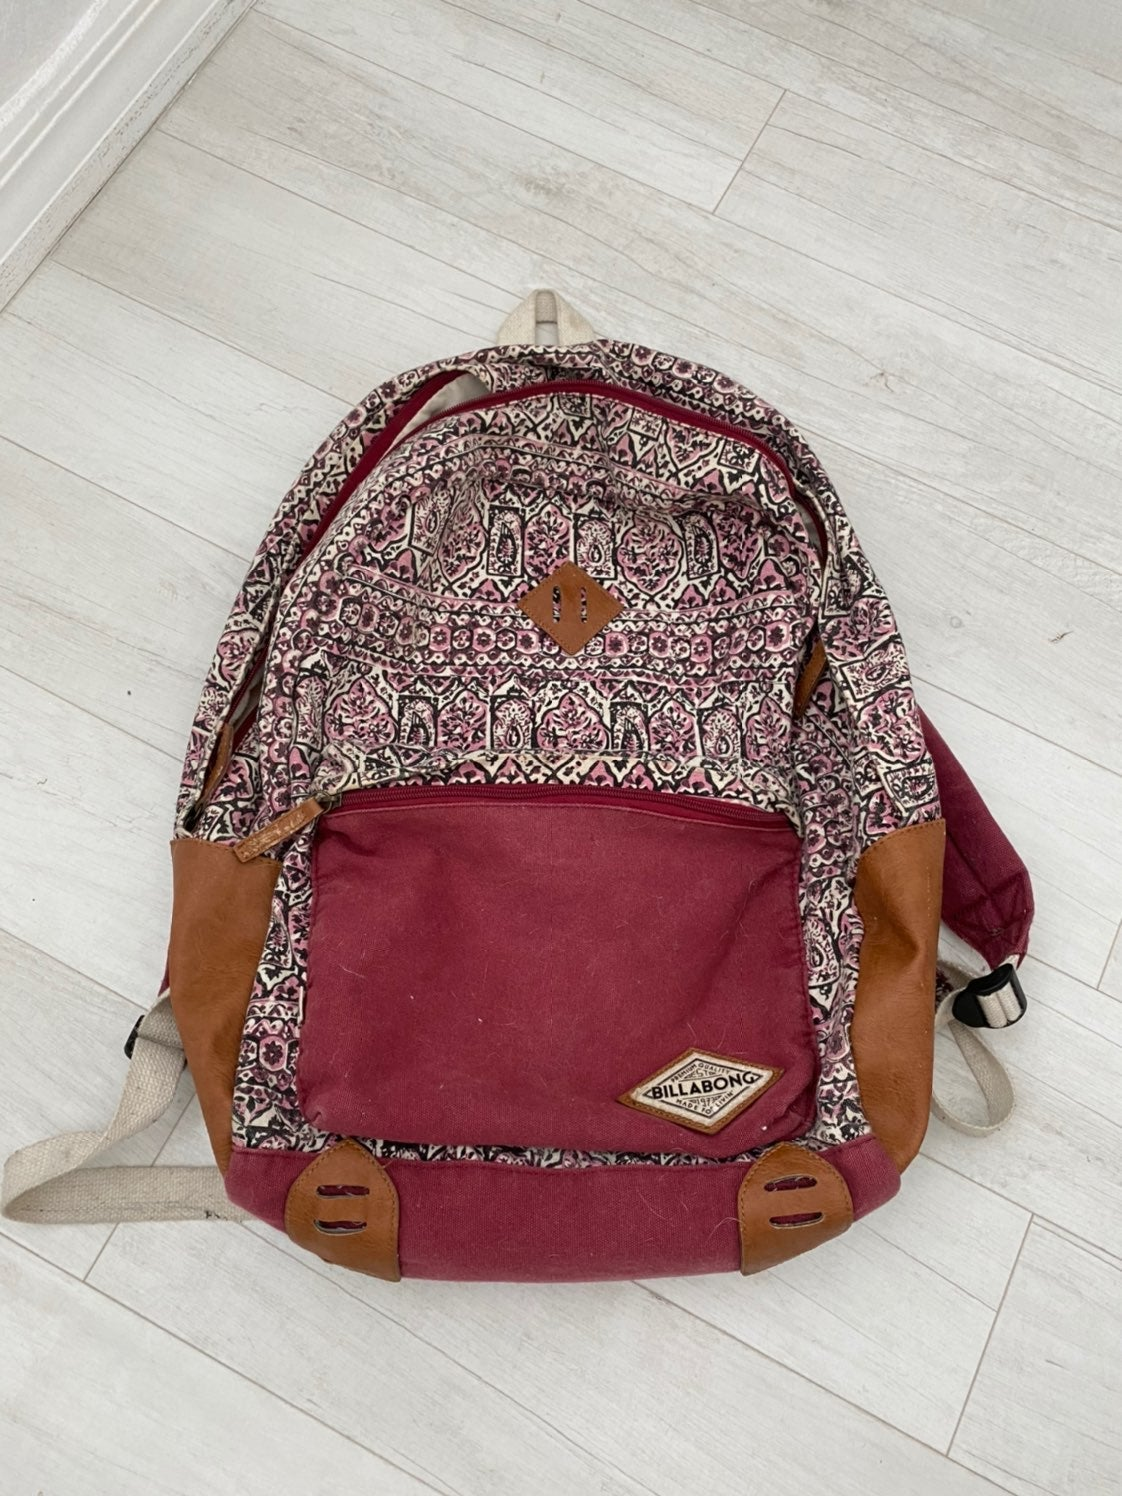 billabong backpack for sale!